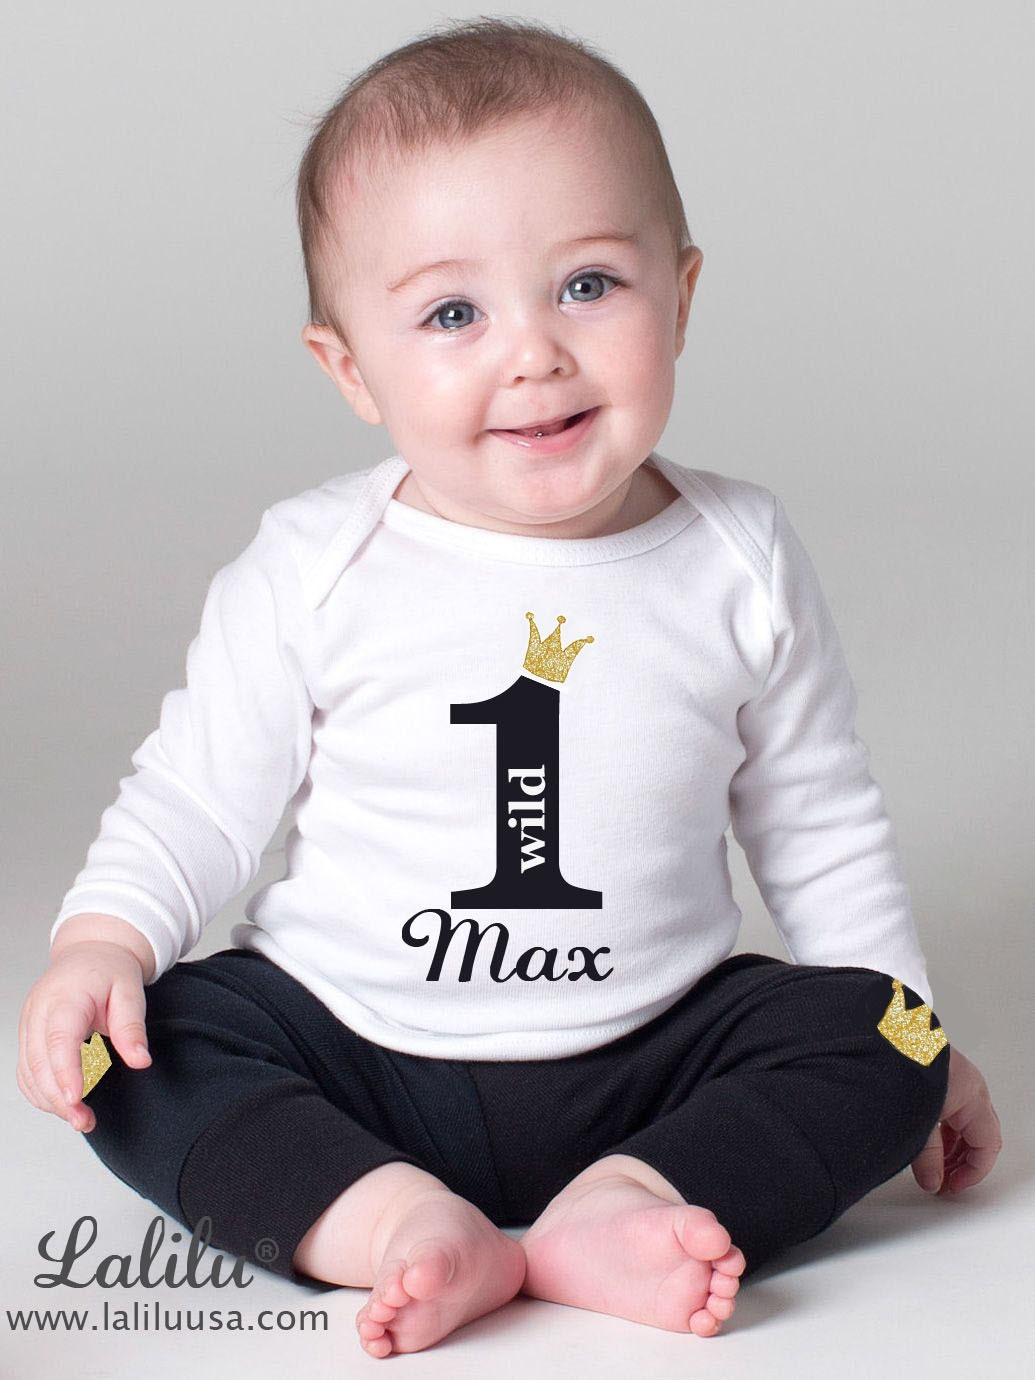 Shop For 1 Year Old Birthday Boy Clothing Apparel On Zazzle Check Out Our